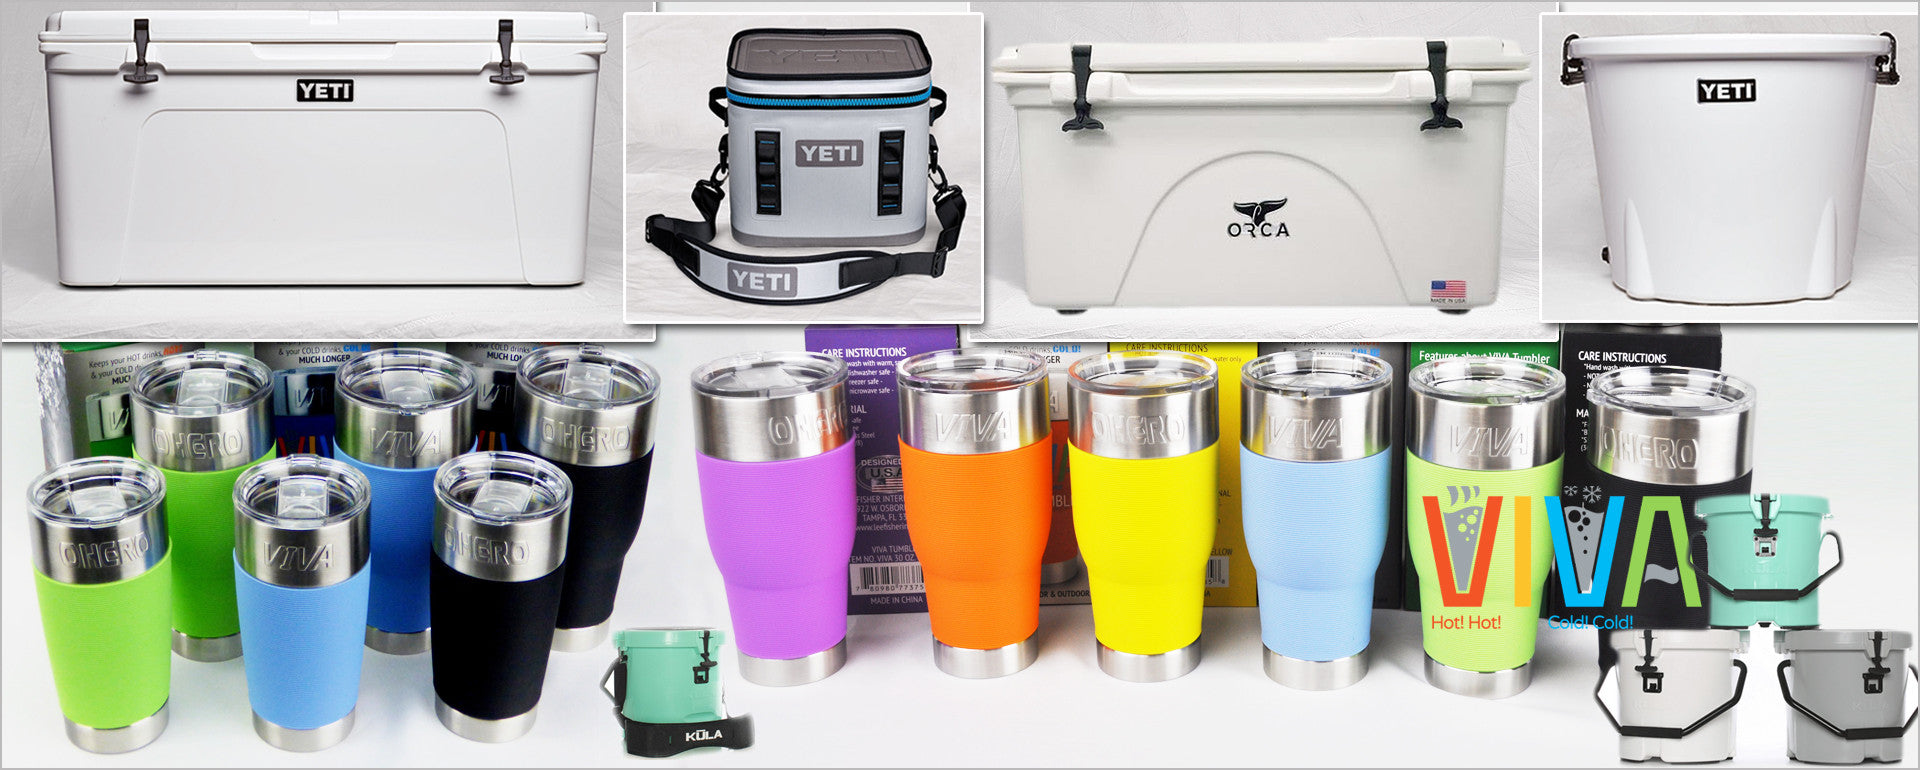 VIVA Coolers and Tumblers from Lee Fisher